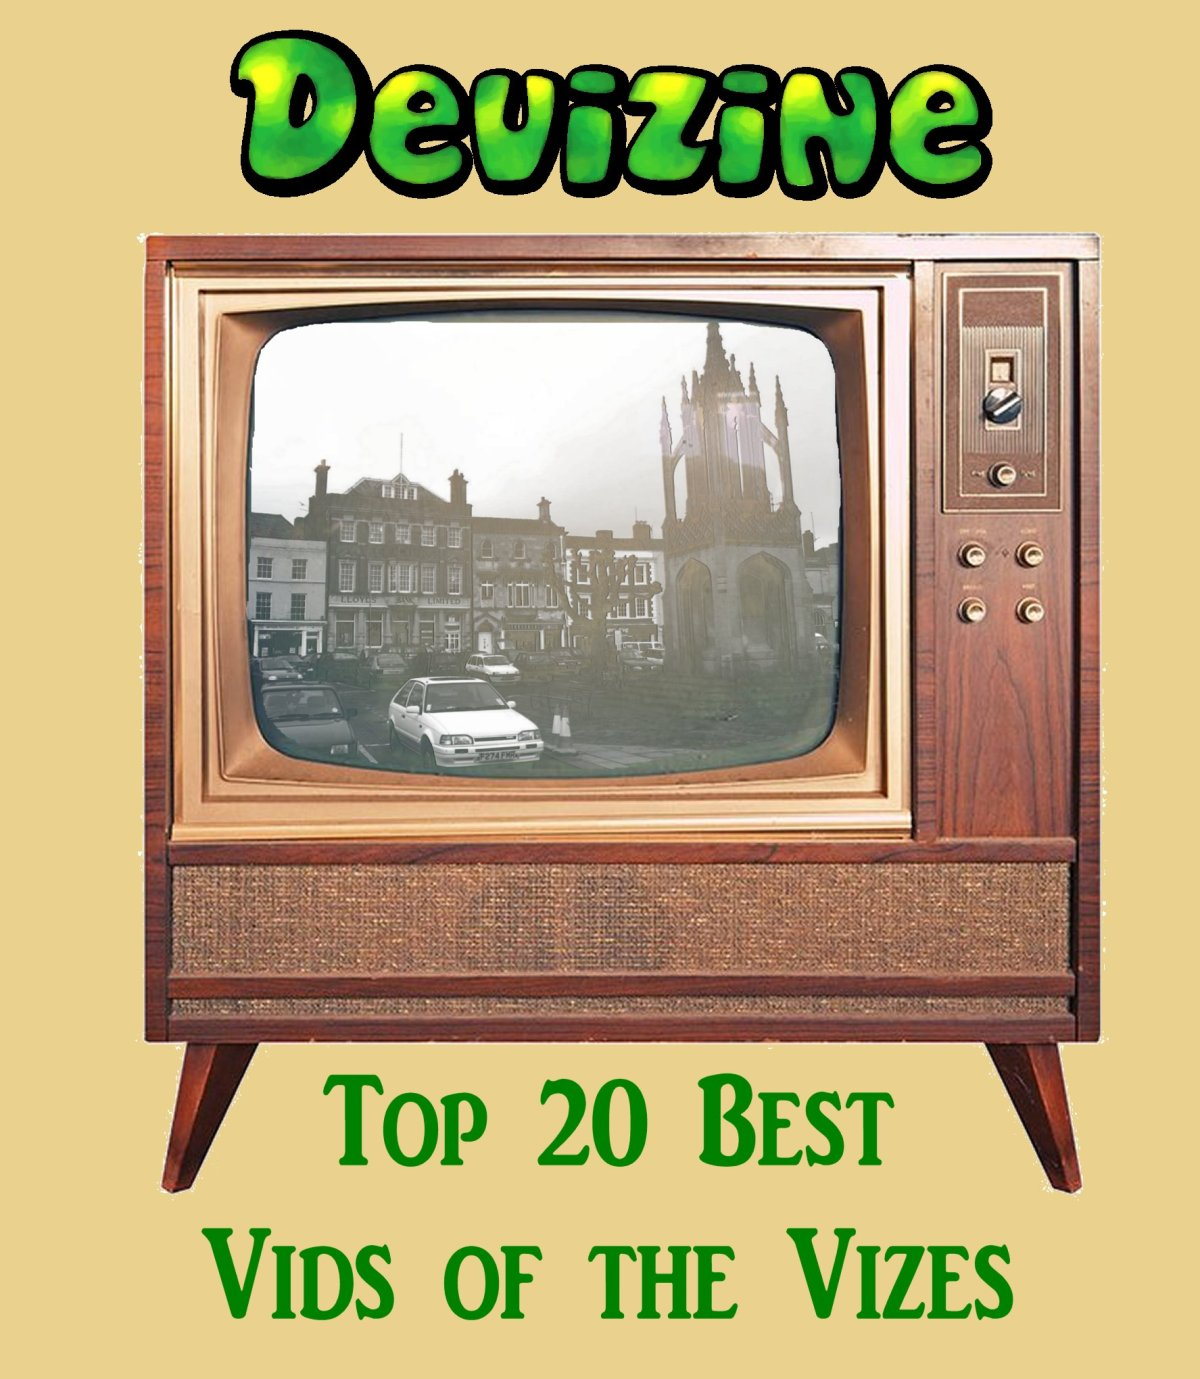 Top Twenty Best Vids of the Vizes!